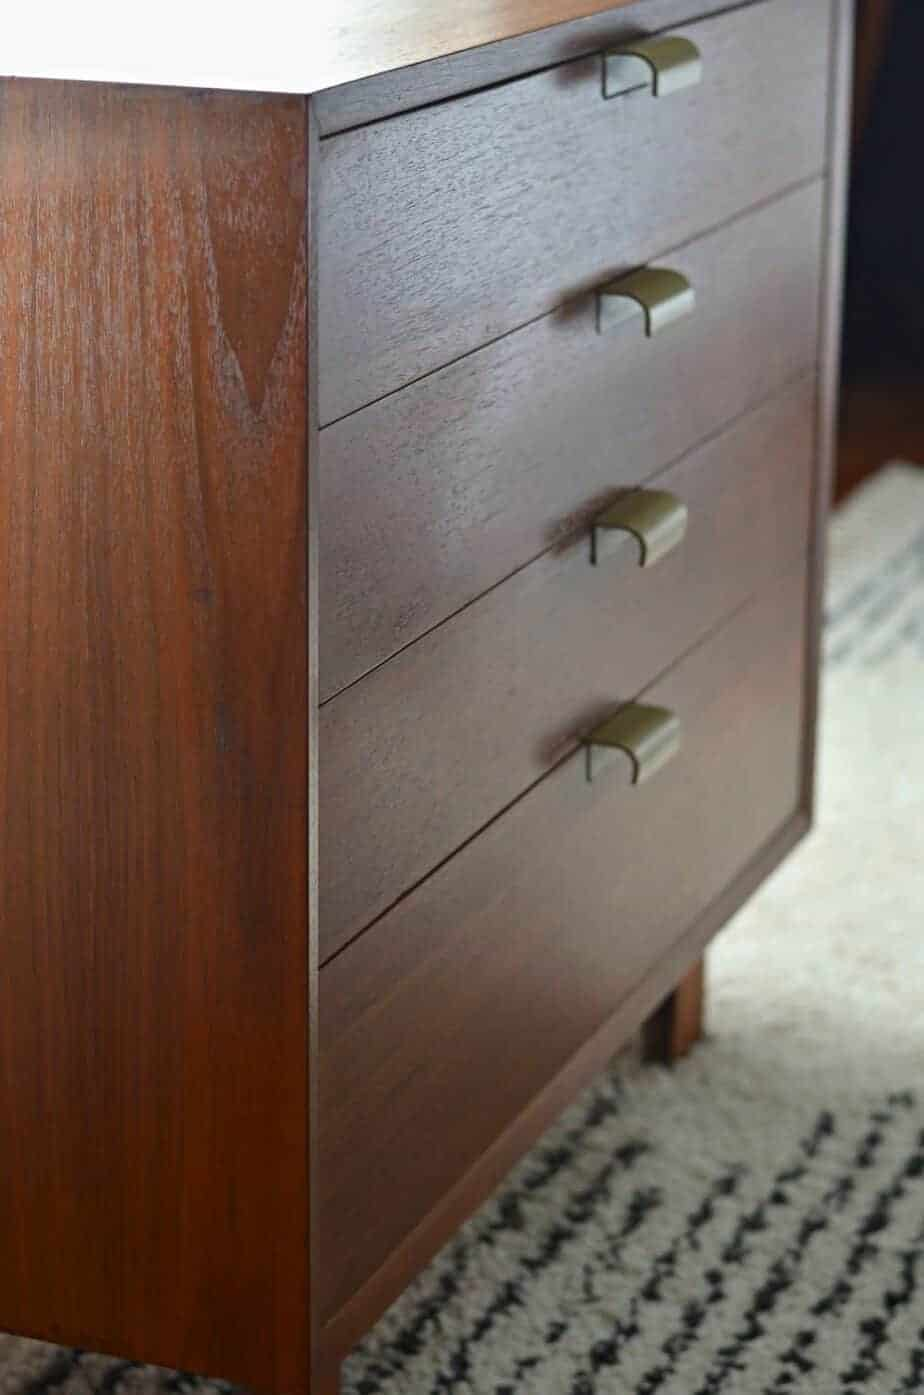 how to revitalize damaged vintage wood furniture with Howards Restore-a-Finish on a mid-century modern dresser